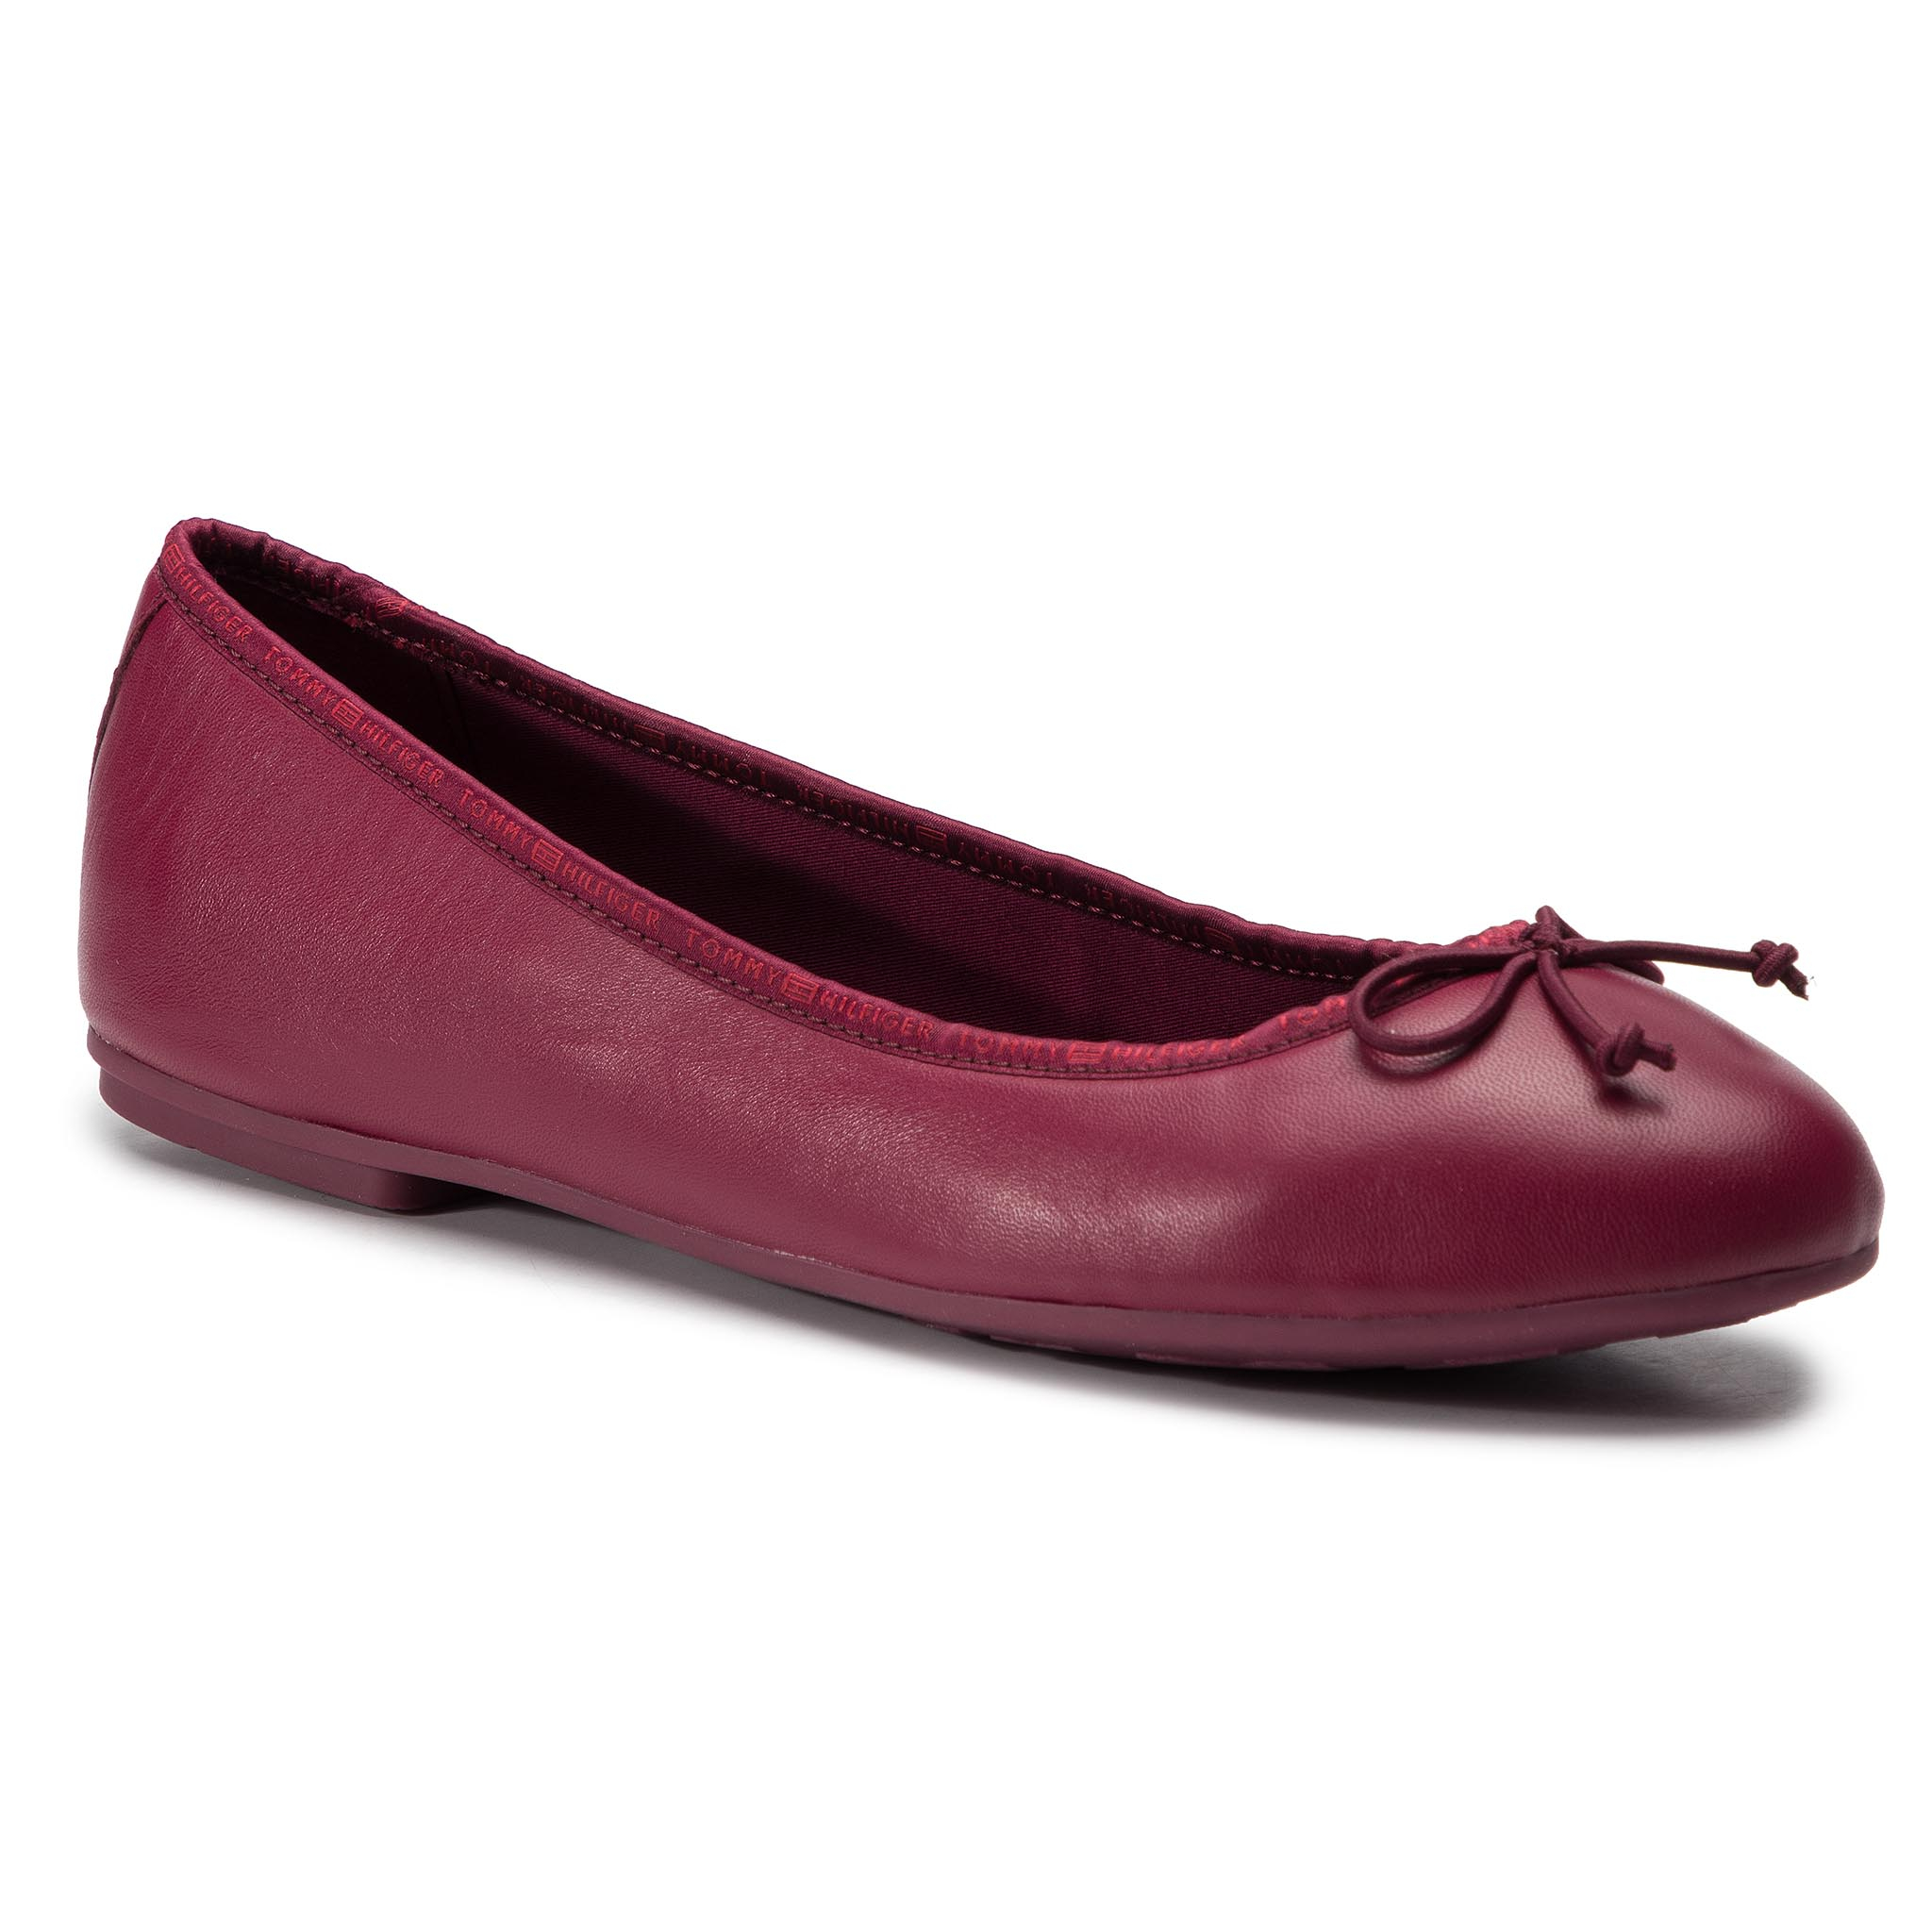 Balerini TOMMY HILFIGER - Leather Ballerina Tommy Branding FW0FW04439 Beet Red 522